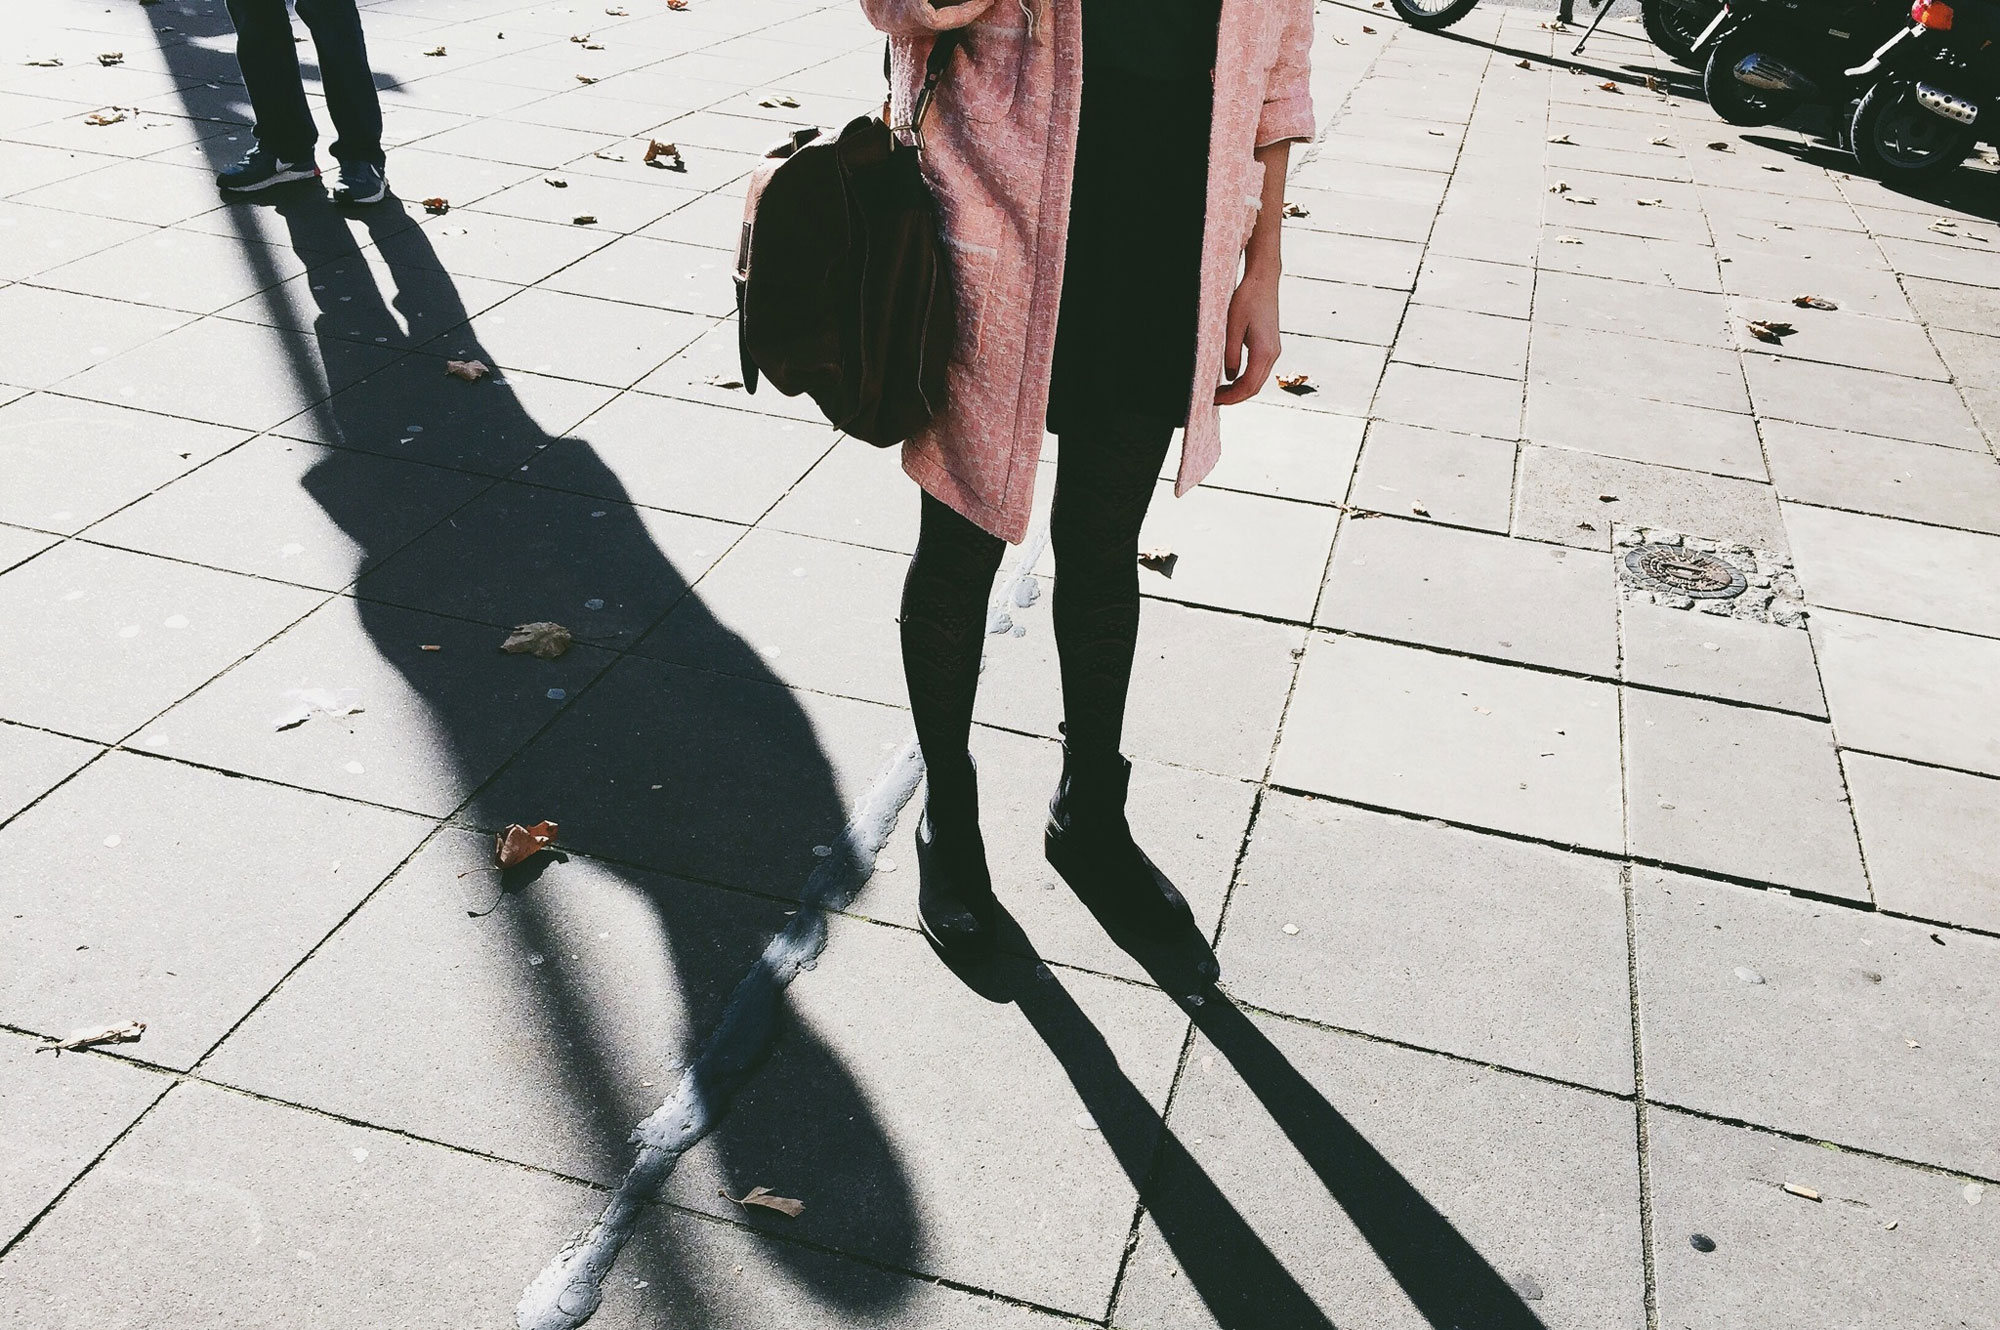 A man's shadow behind a woman who is on her phone